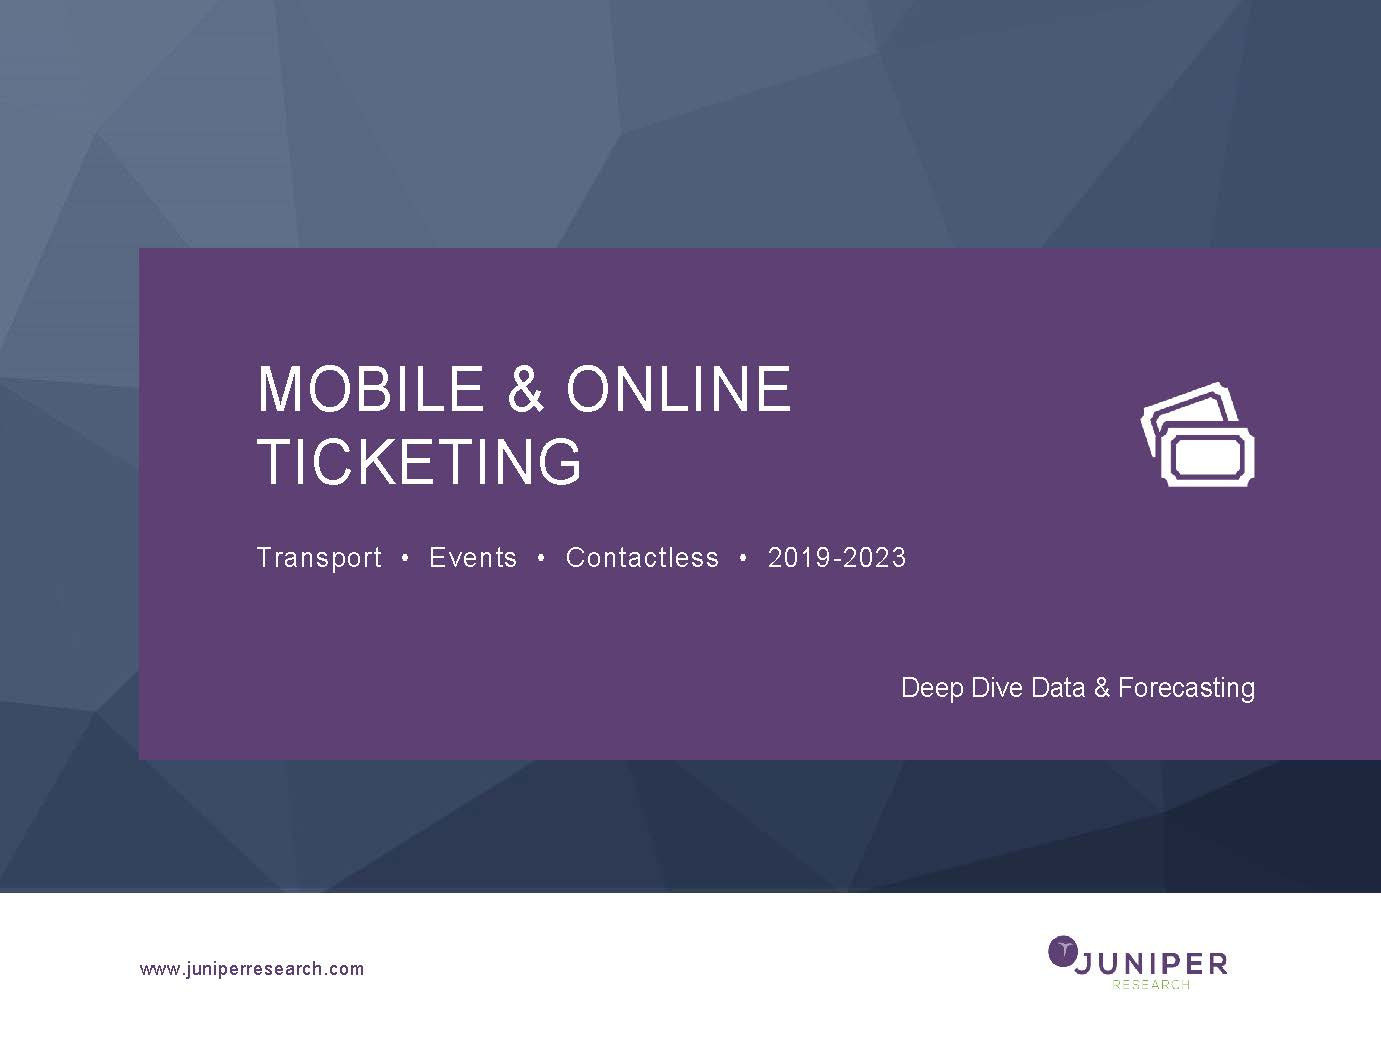 Mobile & Online Ticketing: Deep Dive Data & Forecasting 2019-2023